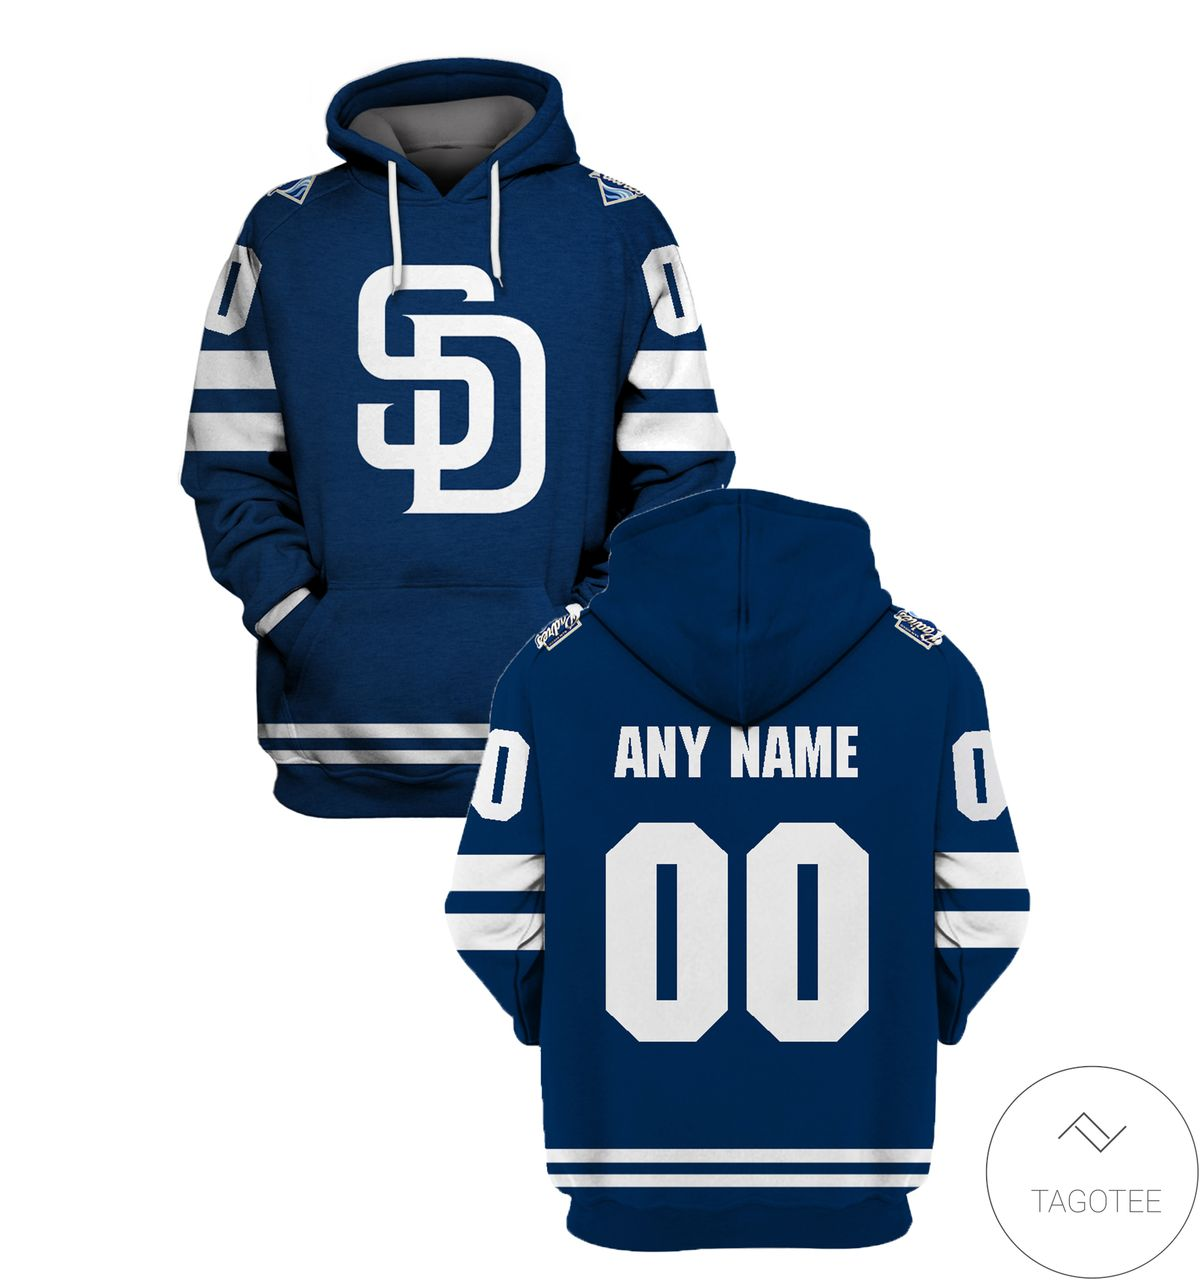 Personalized Name And Number San Diego Navy All Over Print T-shirt